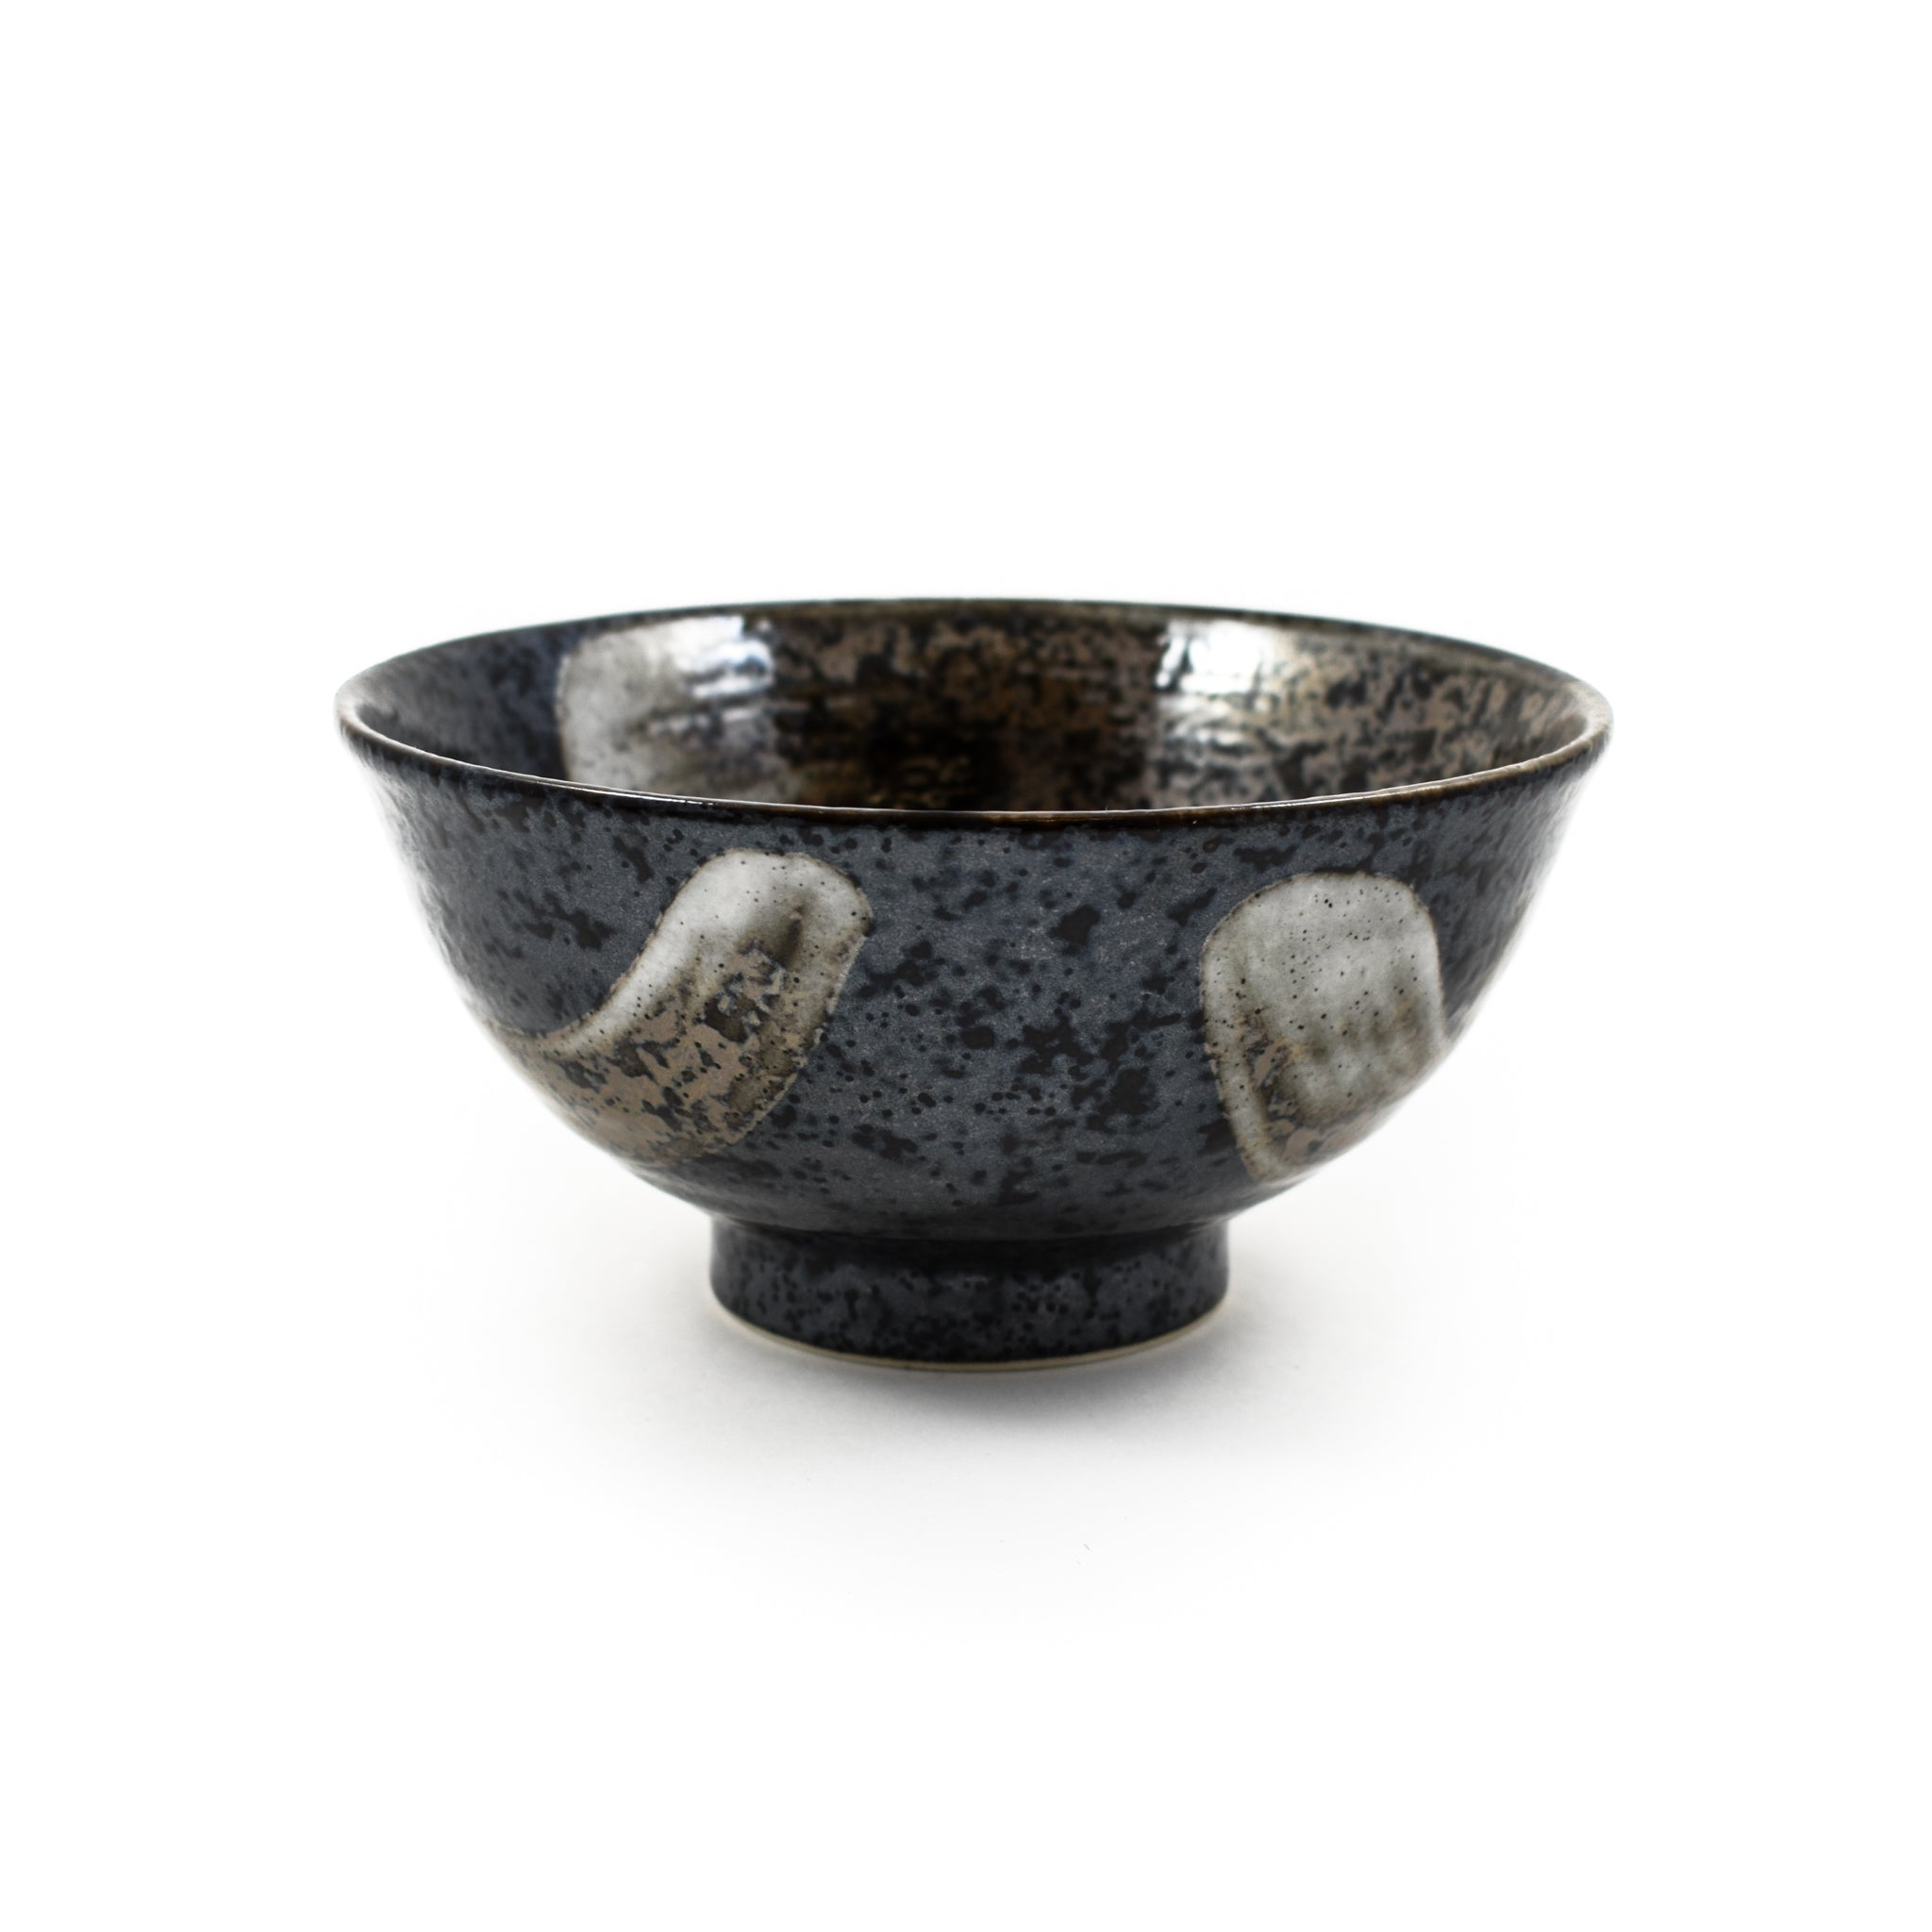 Kiji Stoneware & Ceramics Karasuba-Iro Large Rice Bowl Tableware Japanese Tableware Japanese Food